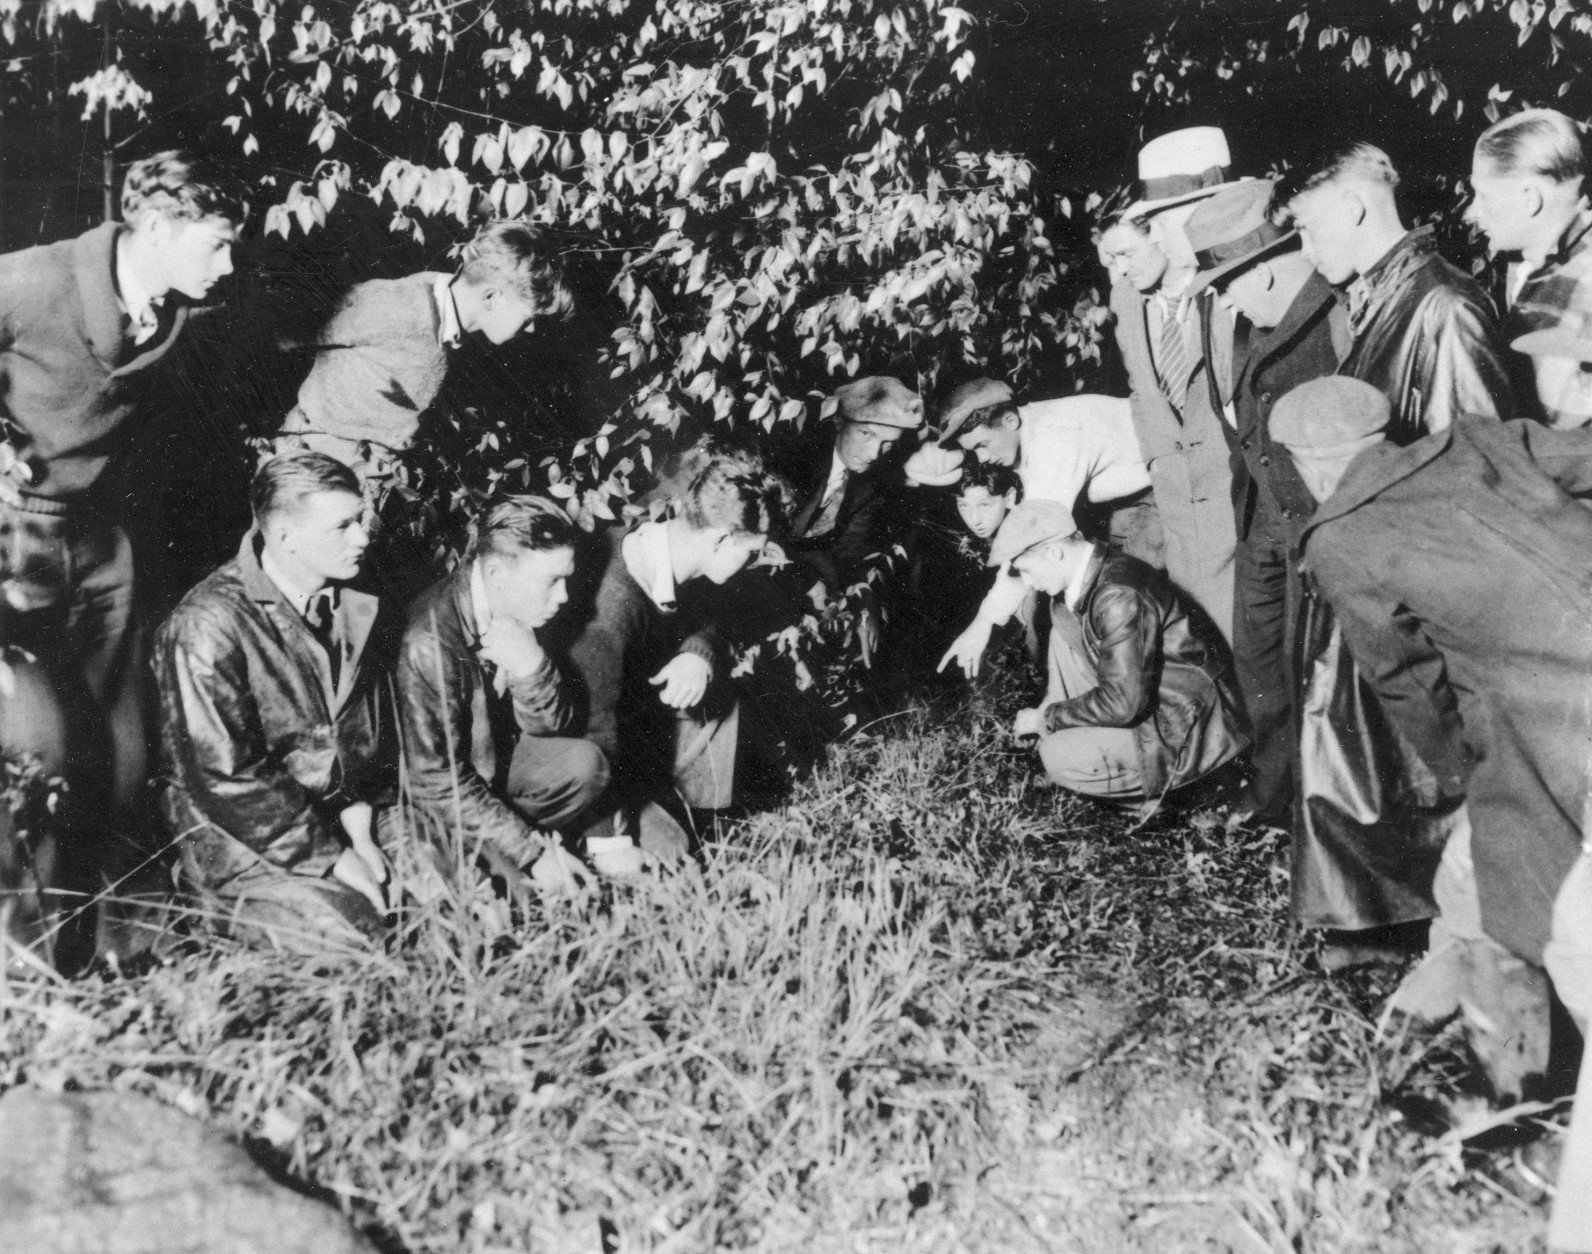 Newsmen and spectators are watching as a young man points to the spot where the body of 19-month-old baby Charles A. Lindbergh Jr., was found in a shallow grave, near Mount Rose, N.J., on May 12, 1932. The infant son of world-famed aviator Charles Lindbergh was kidnapped on March 1, 1932, and found dead today, only four-and-a-half miles away from the Lindbergh estate.  (AP Photo)